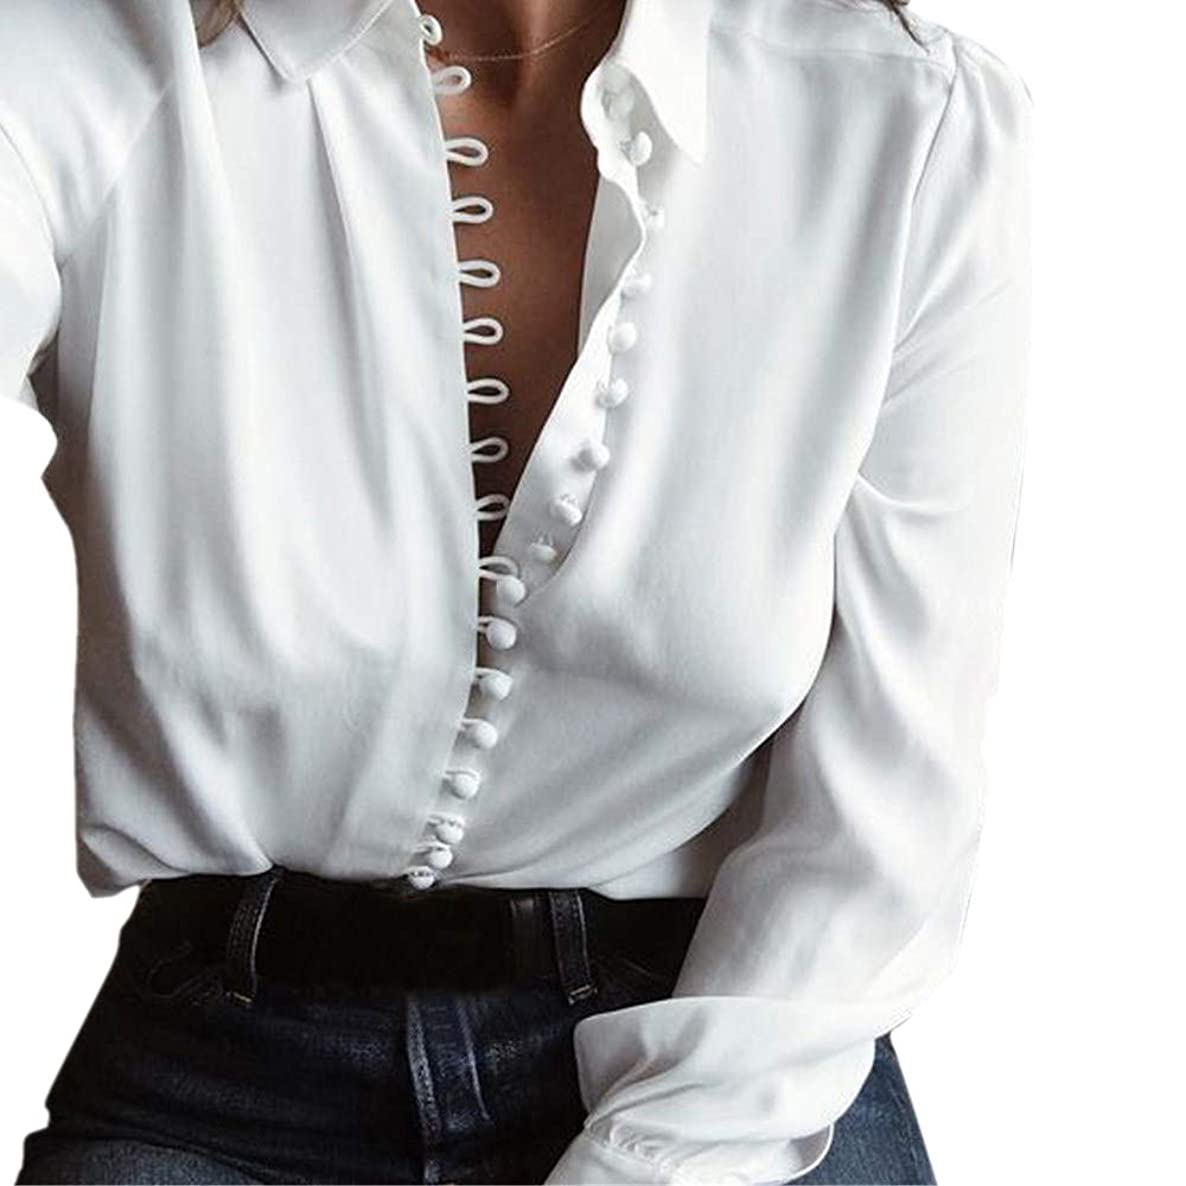 Theshy Lapel T Shirt, 2019 Comfortable Fashion Design Women V Neck Casual Solid Long Sleeves Blouse Lapel Shirt Buttons